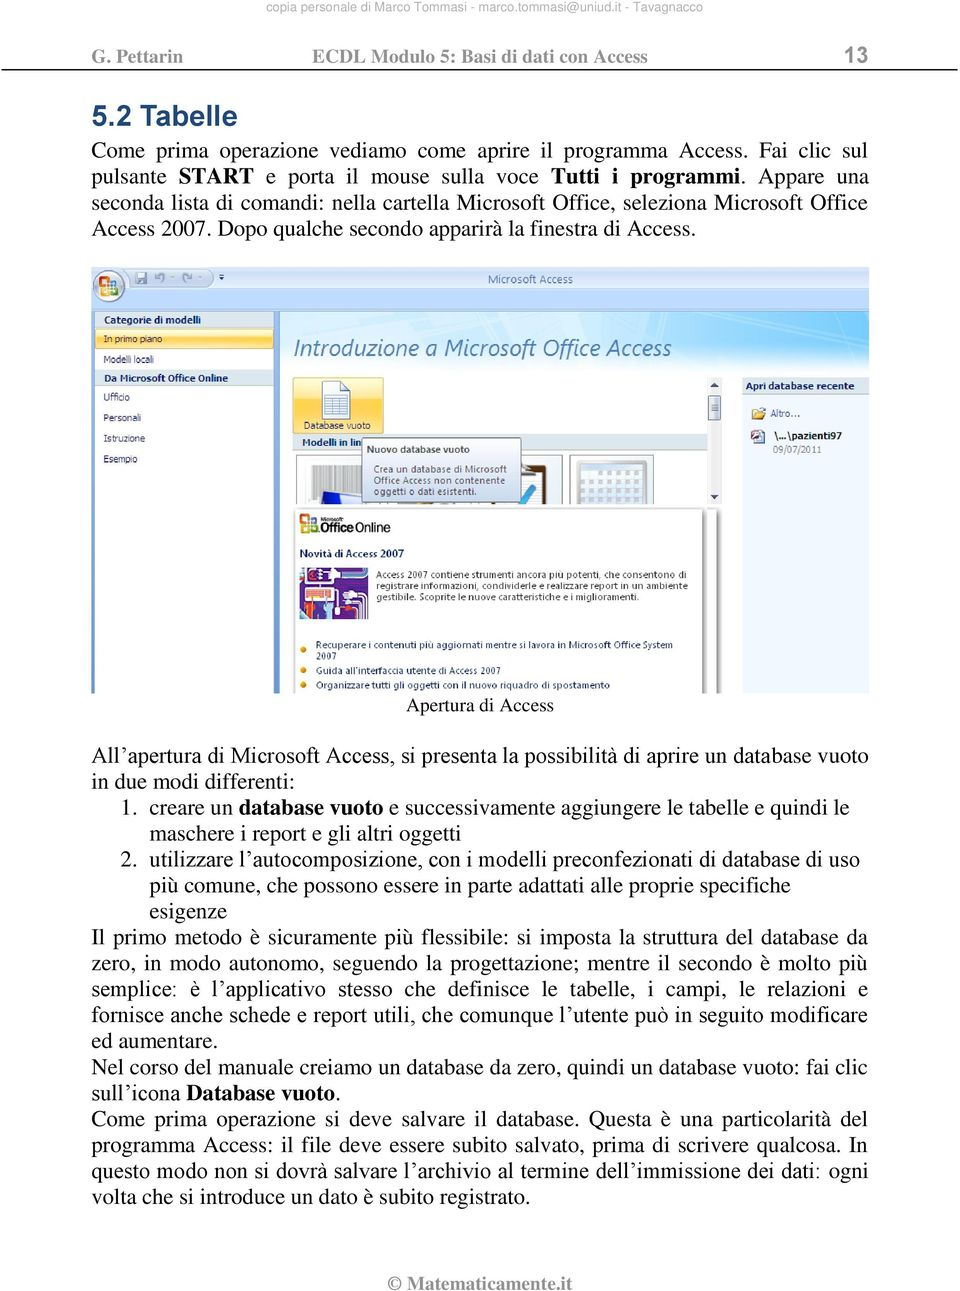 Apertura di Access All apertura di Microsoft Access, si presenta la possibilità di aprire un database vuoto in due modi differenti: 1.